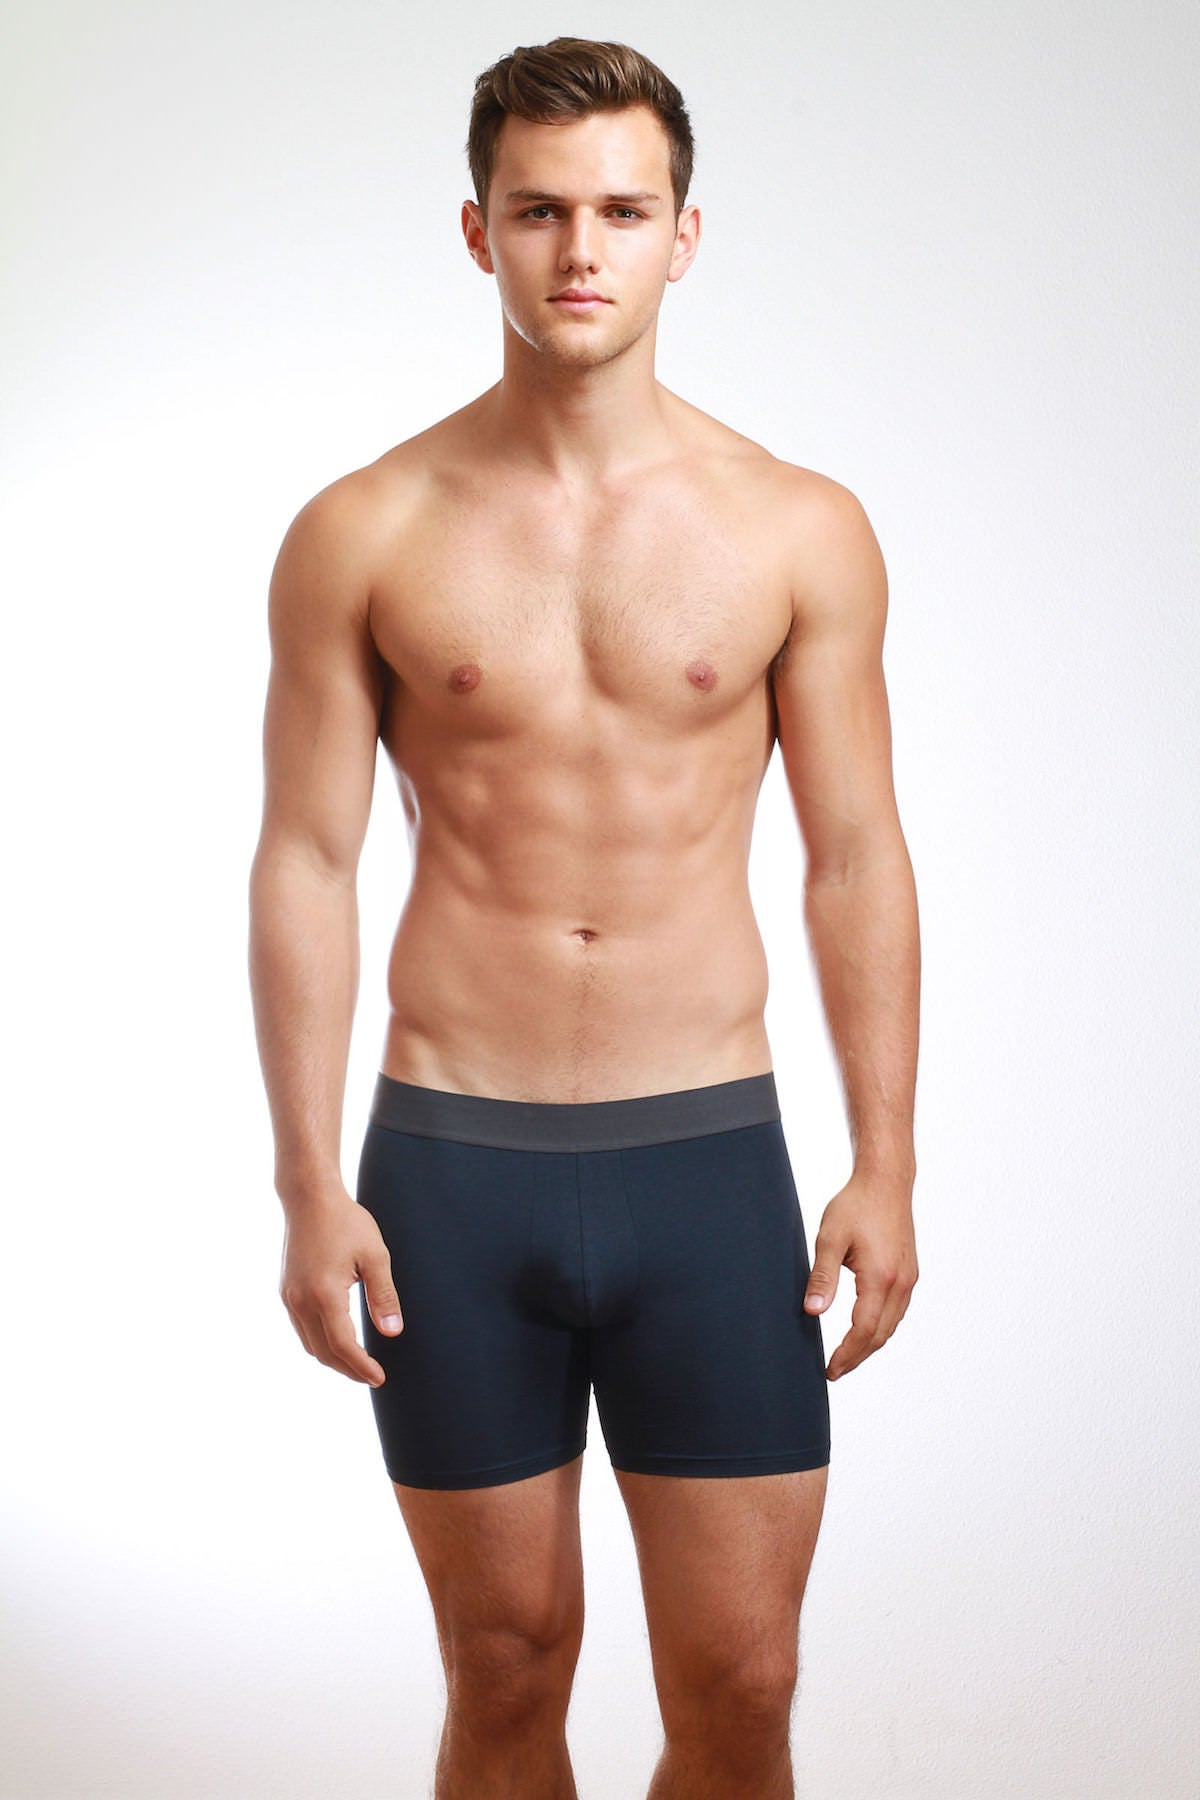 To acquire How to wear comfortably boxer briefs pictures trends